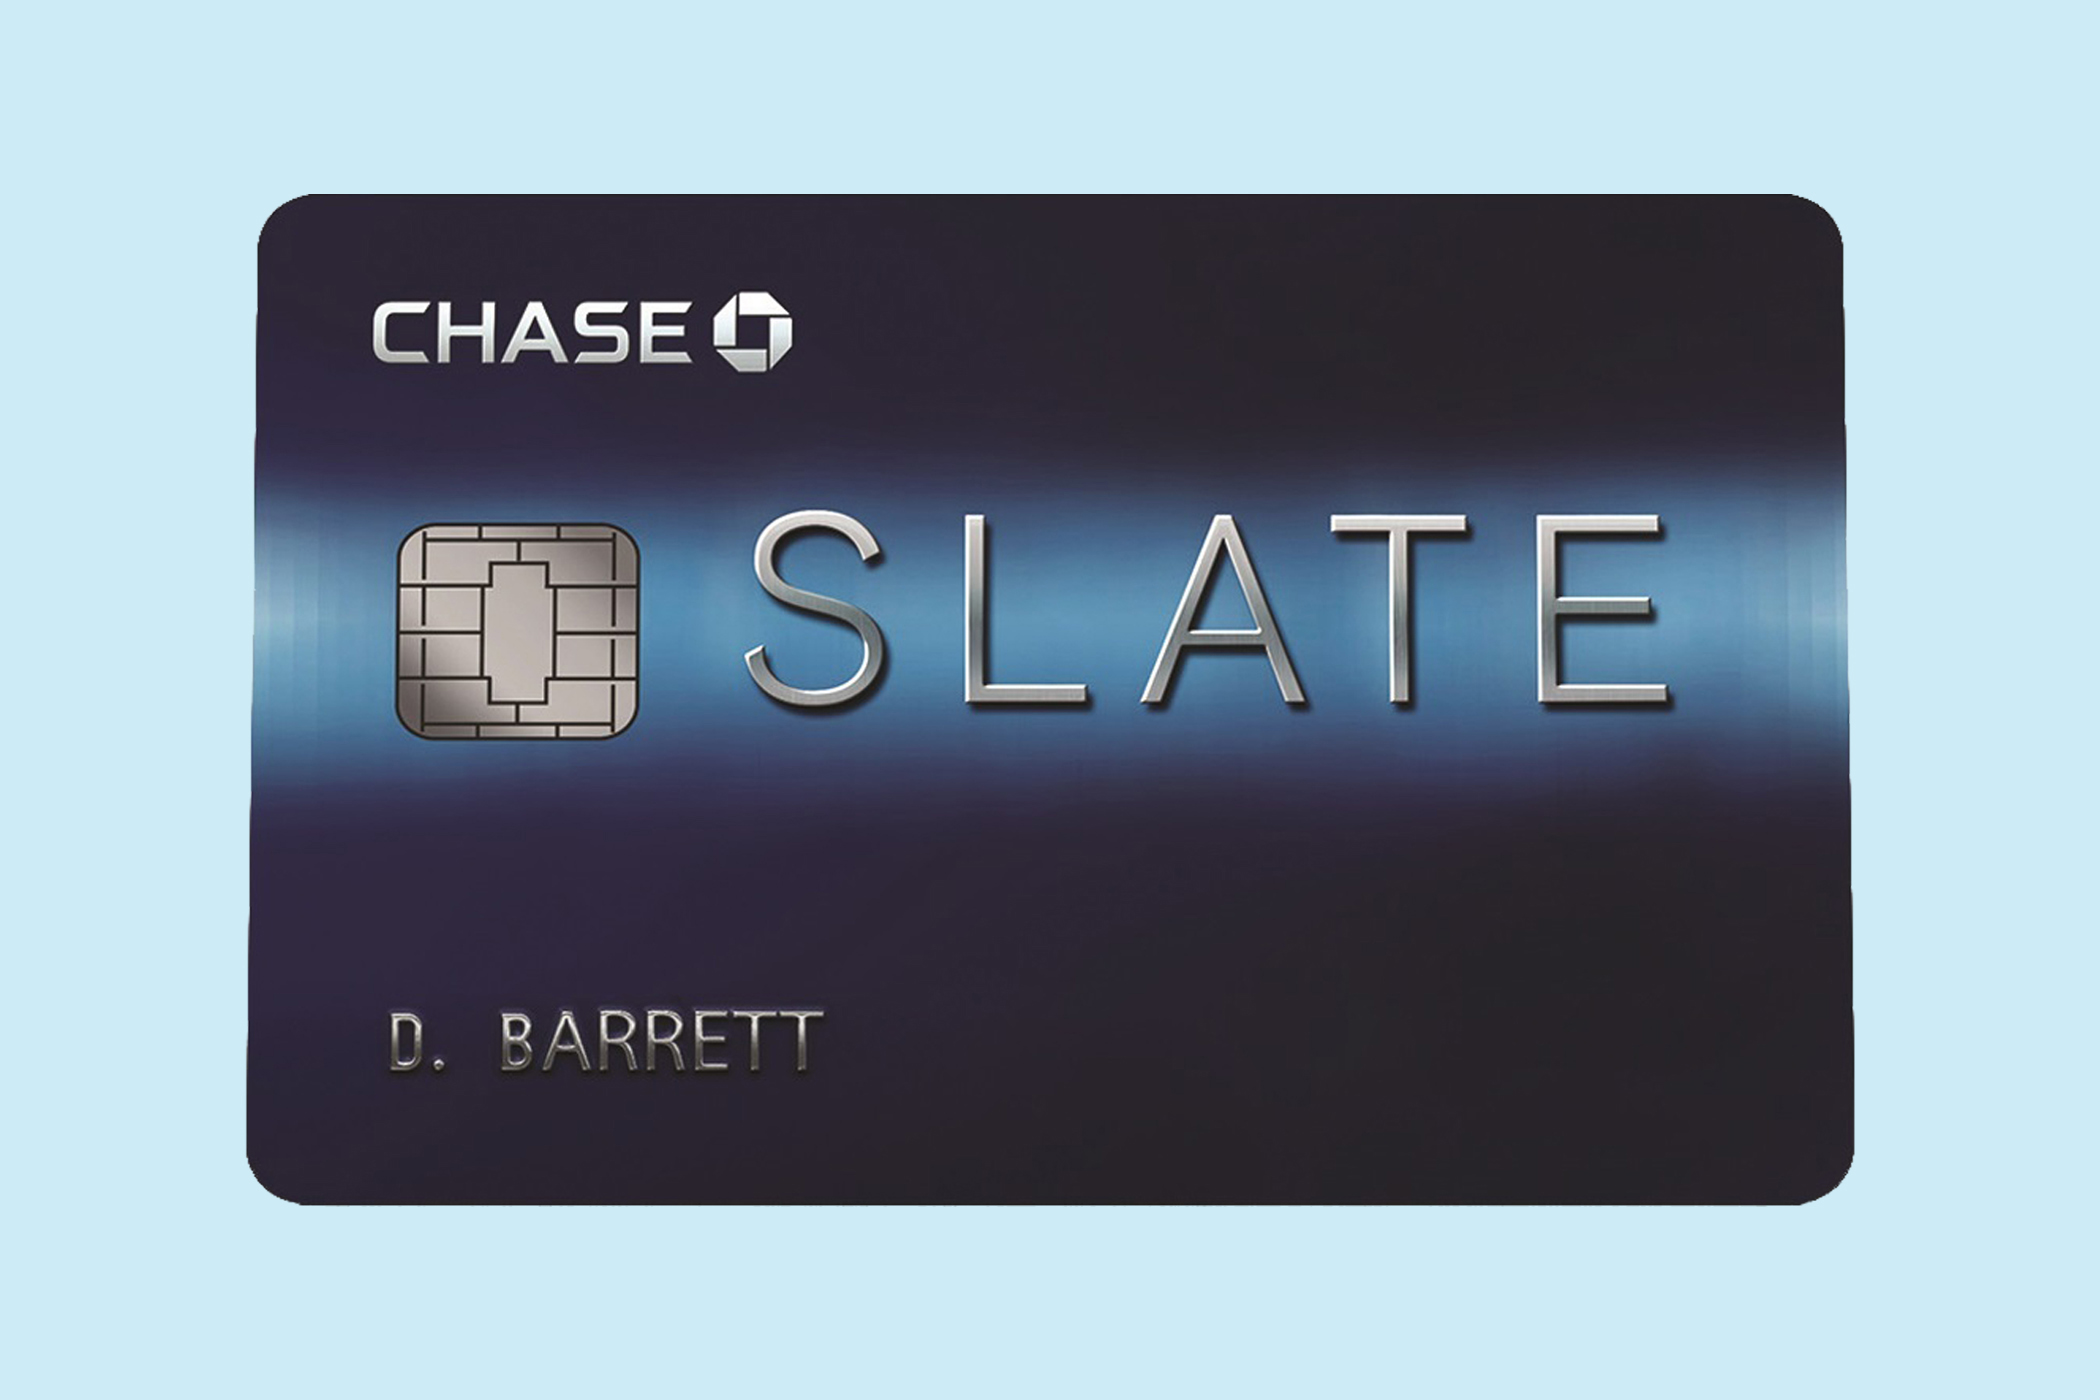 Many people believe you shouldn't spend money you don't have by purchasing anything on credit, but the issue isn't that simple, as credit cards play a. Chase Bank: Should I Get the Chase Slate Credit Card?   Time